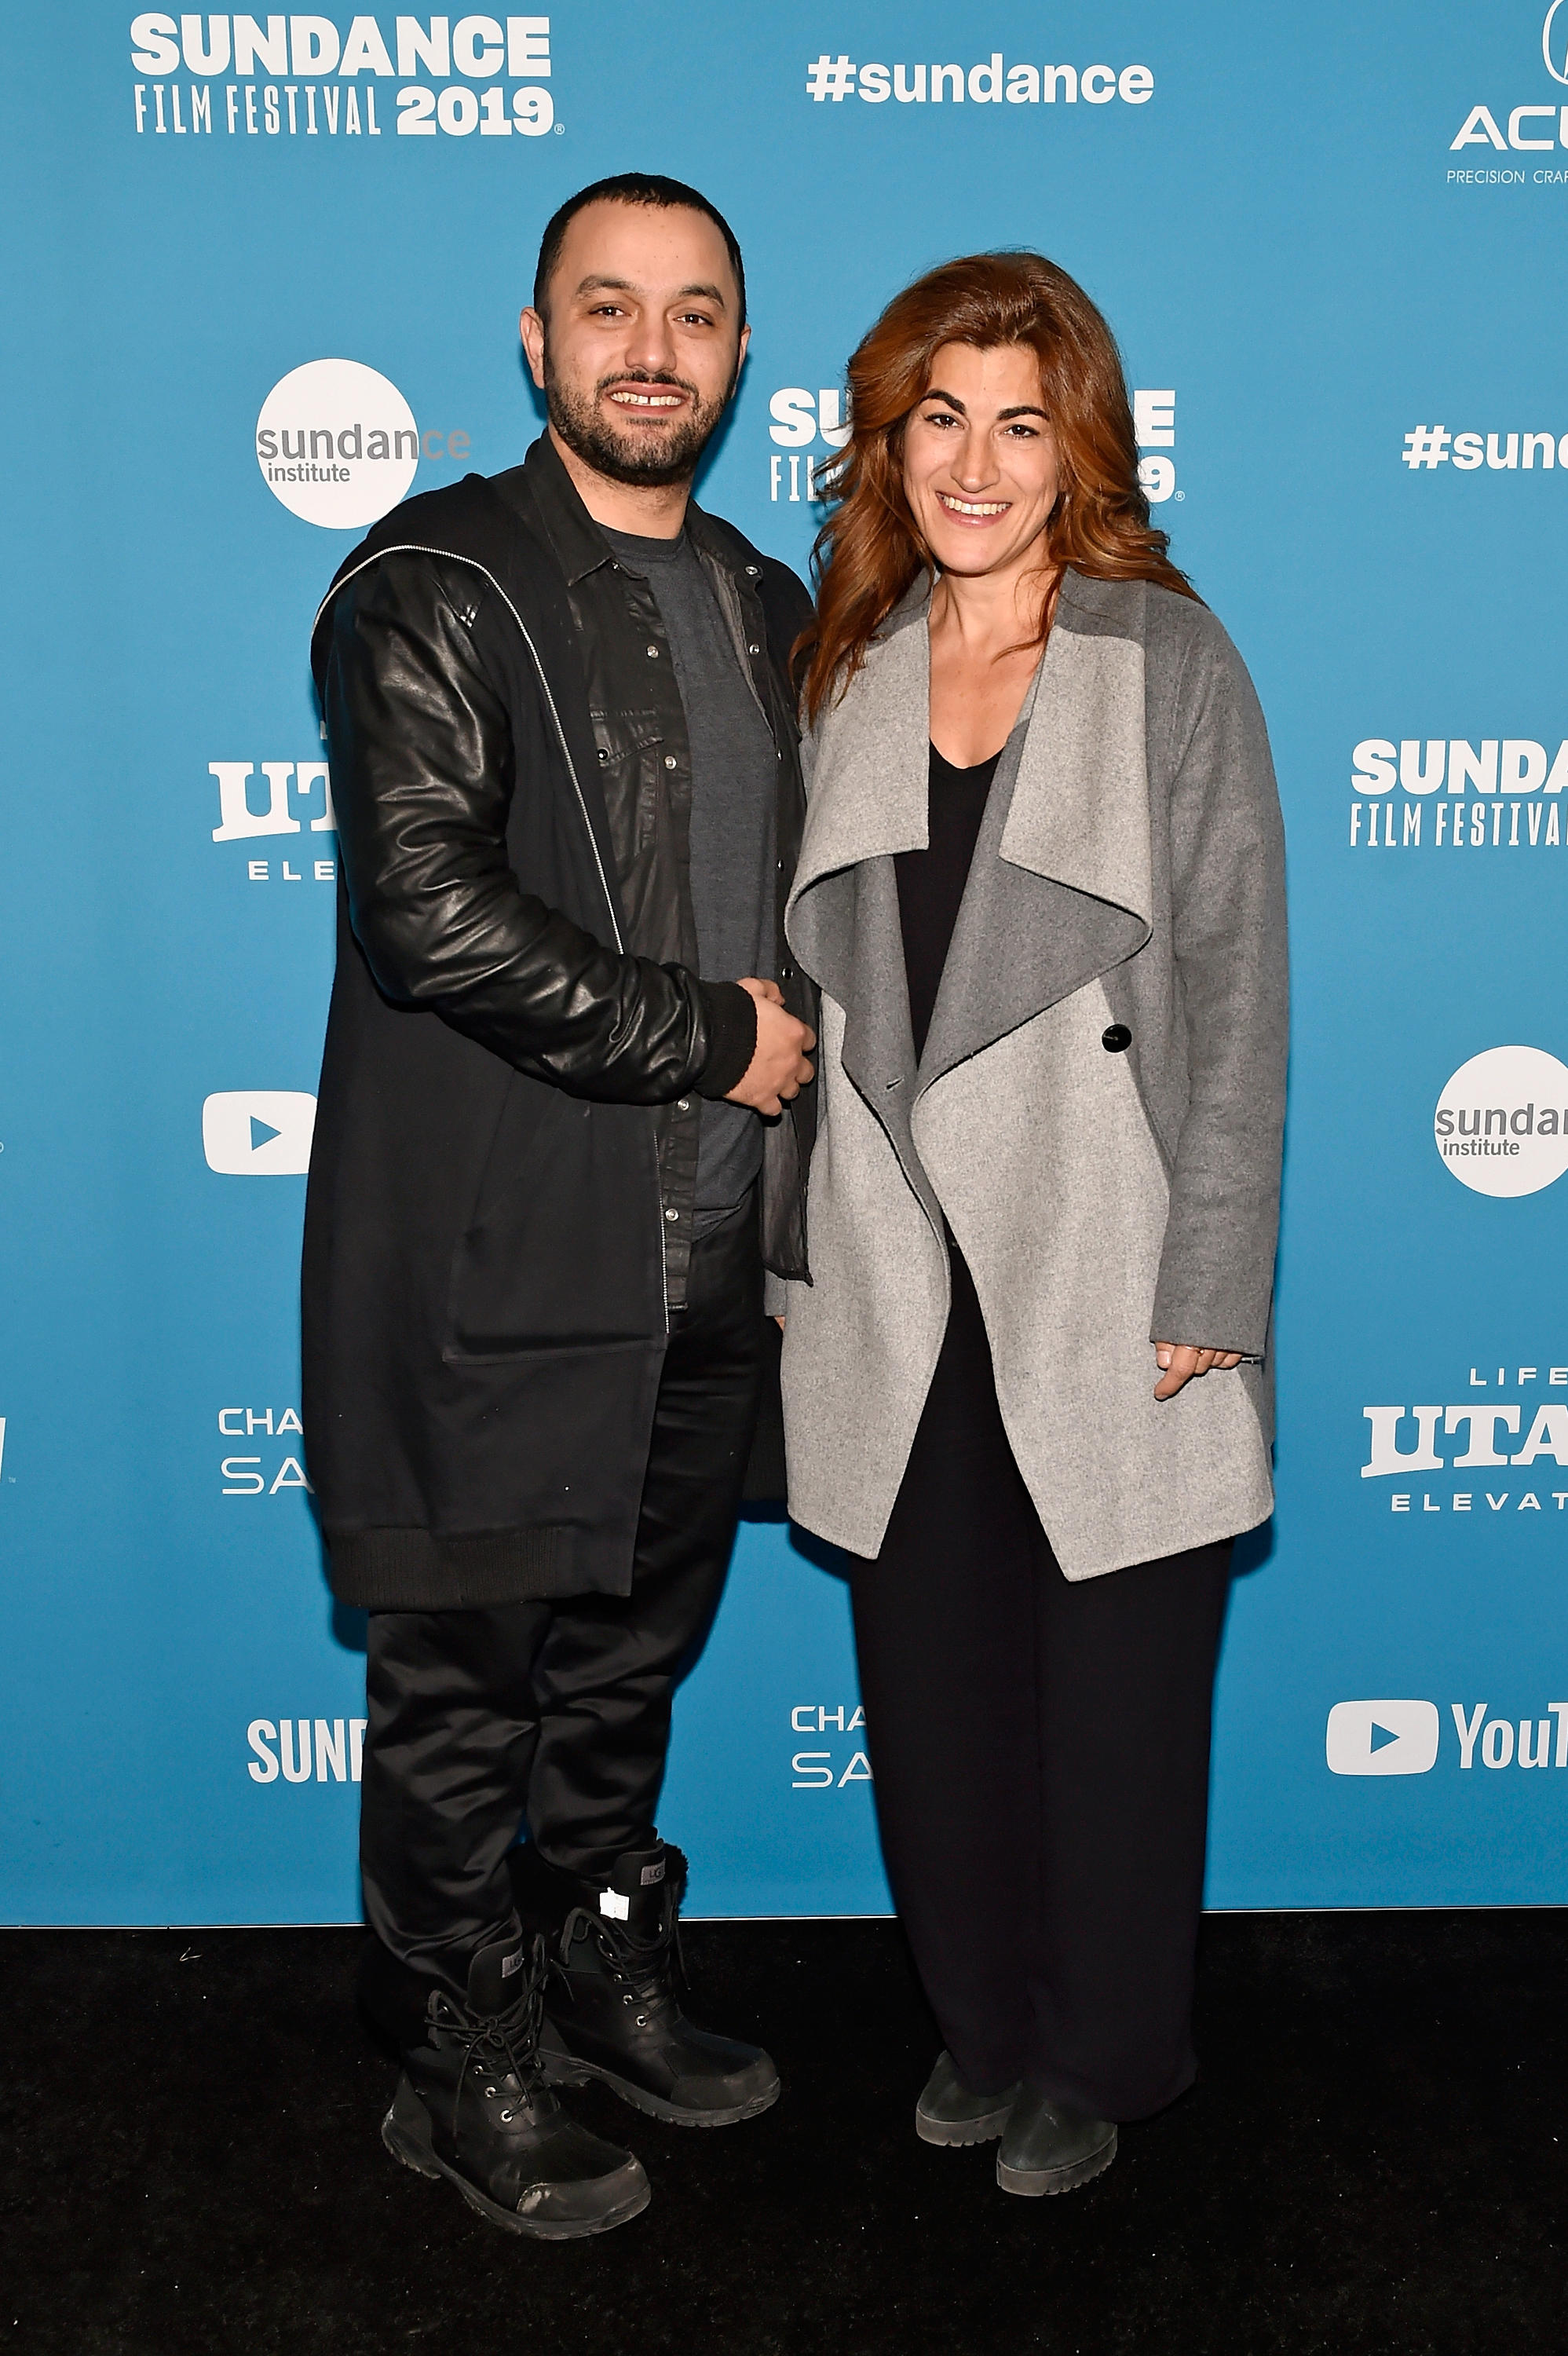 Karim Amer (left) and Jehane Noujaim are directors of the Netflix documentary The Great Hack.